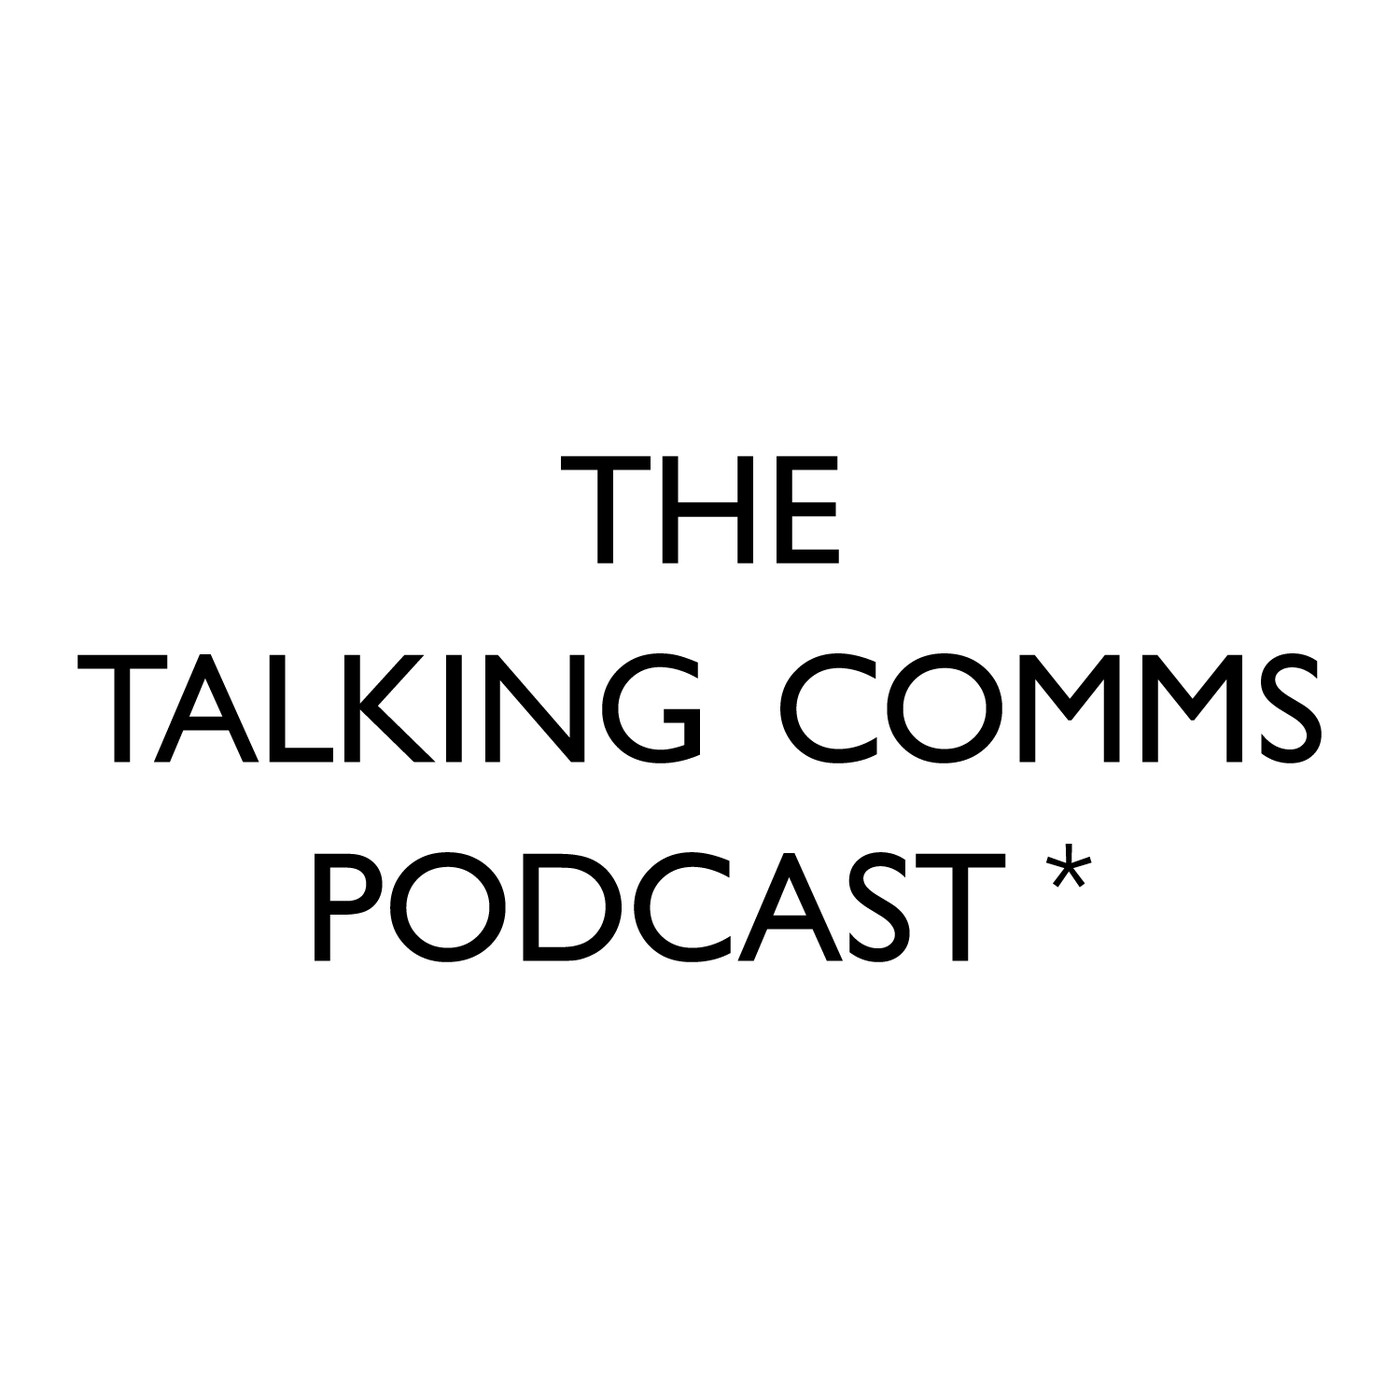 The Talking Comms Podcast